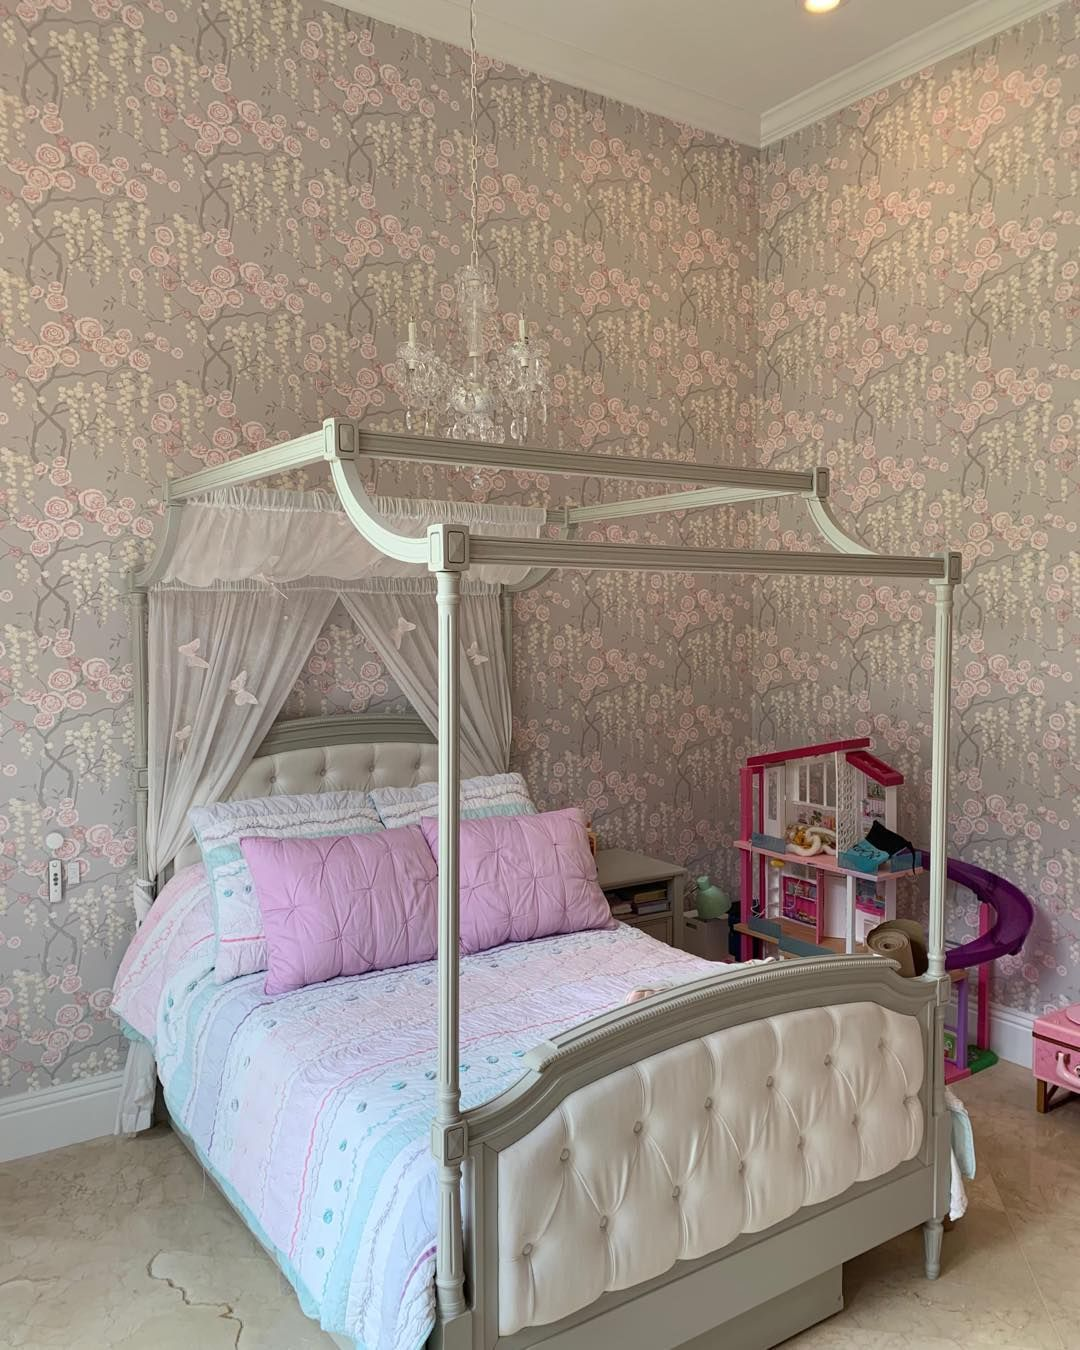 Wallpaper Installation Services Wall Mural Adhesive Wallpaper Dress Your Wall Fast Clean And Detail How To Install Wallpaper Wallpaper Decor Wallpaper Dress